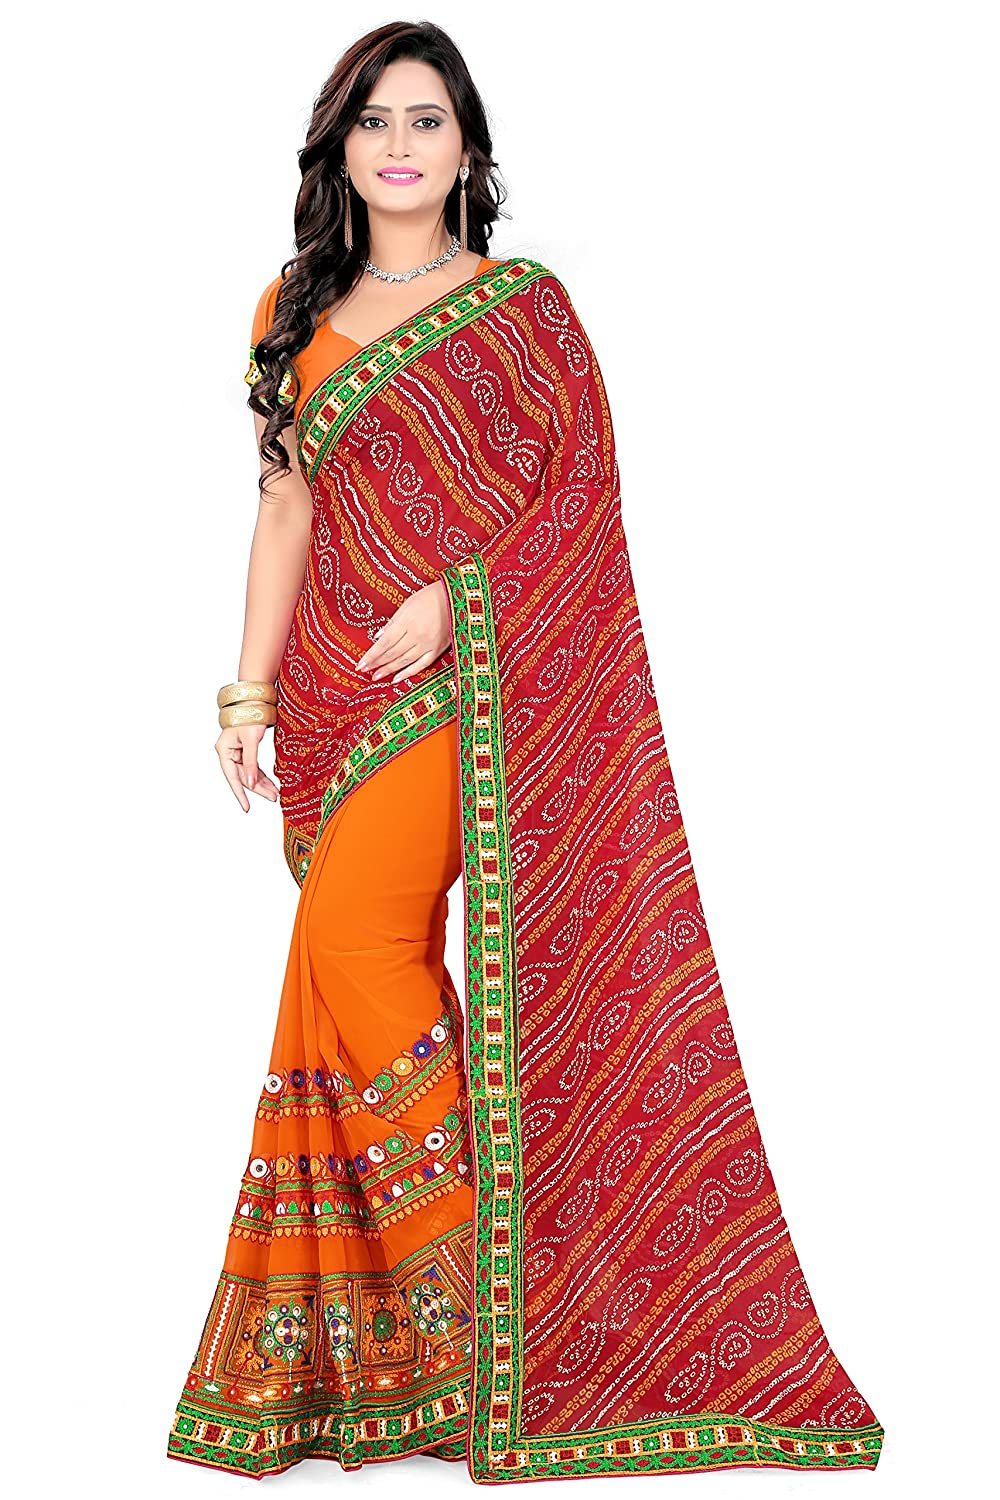 Riva Enterprise Women's Faux Georgette Saree